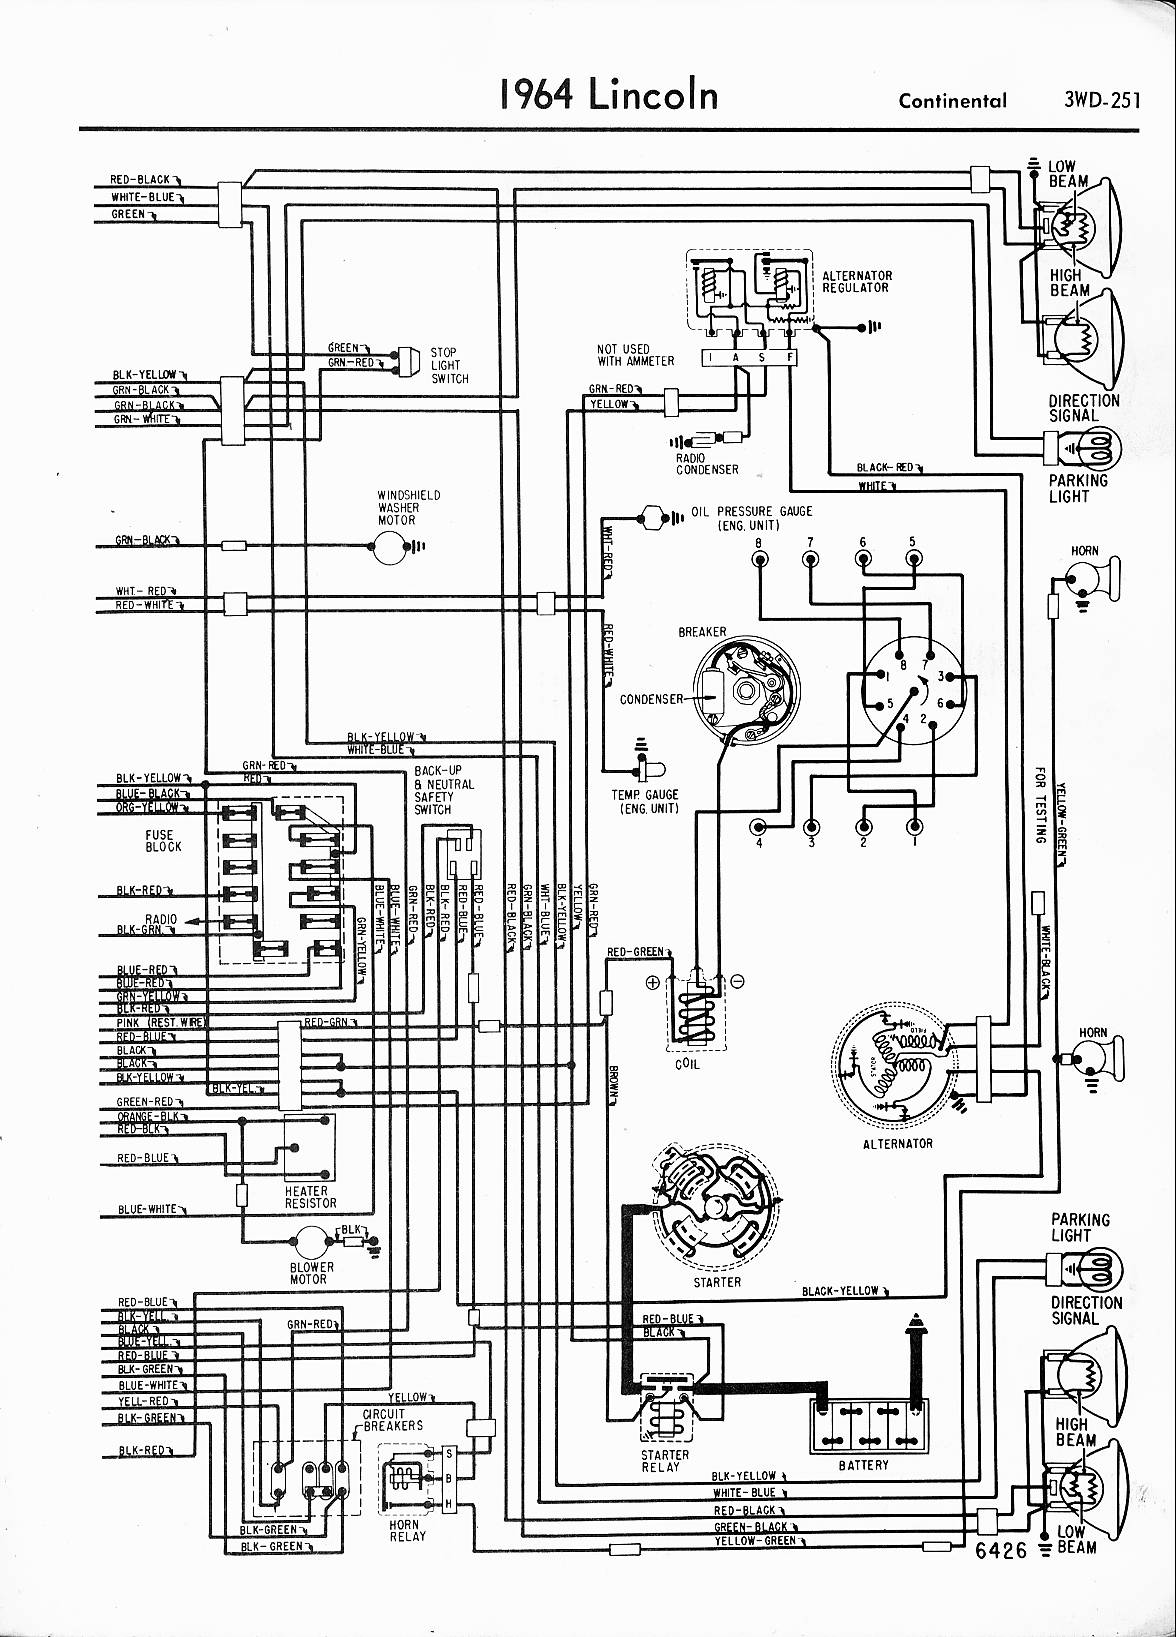 1967 Lincoln Fuse Box Wiring Library 2012 Impala Diagram Continental Convertible Top Content 2000 Beetle Heater